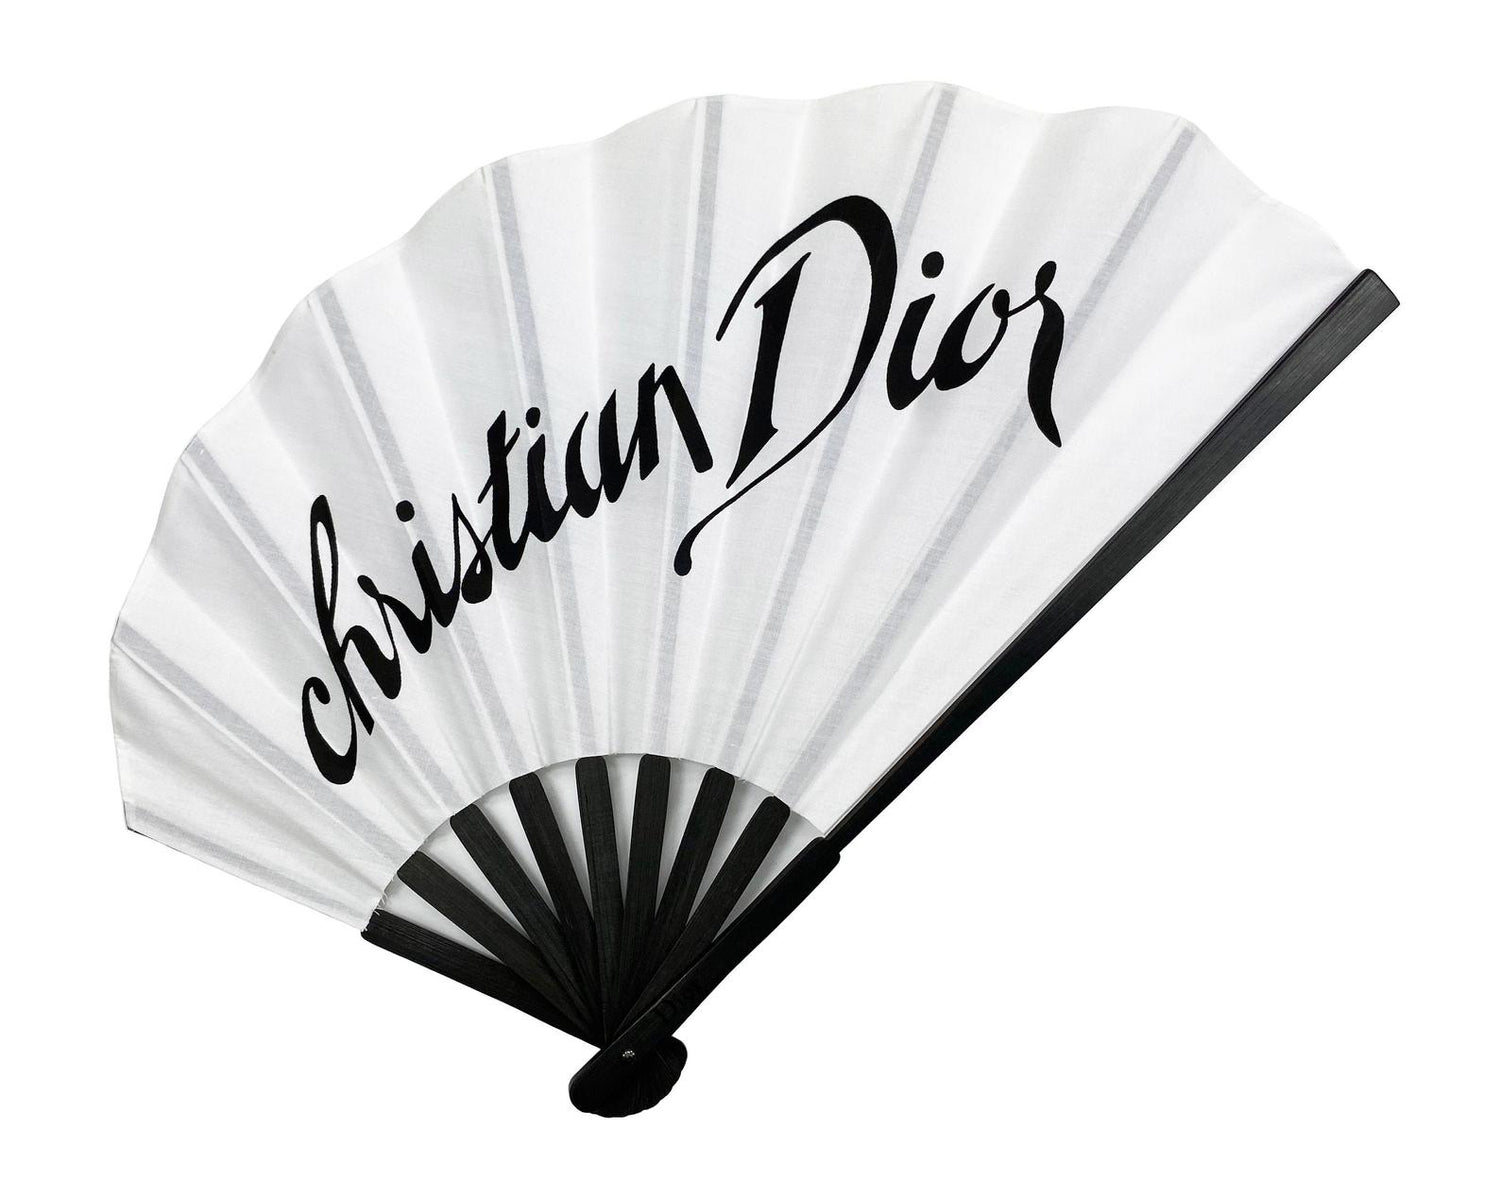 FRUIT vintage Christian Dior rare logo printed hand fan VIP gift. Perfect for use as a home decor piece or to use at a special event. As seen on Lil Kim!